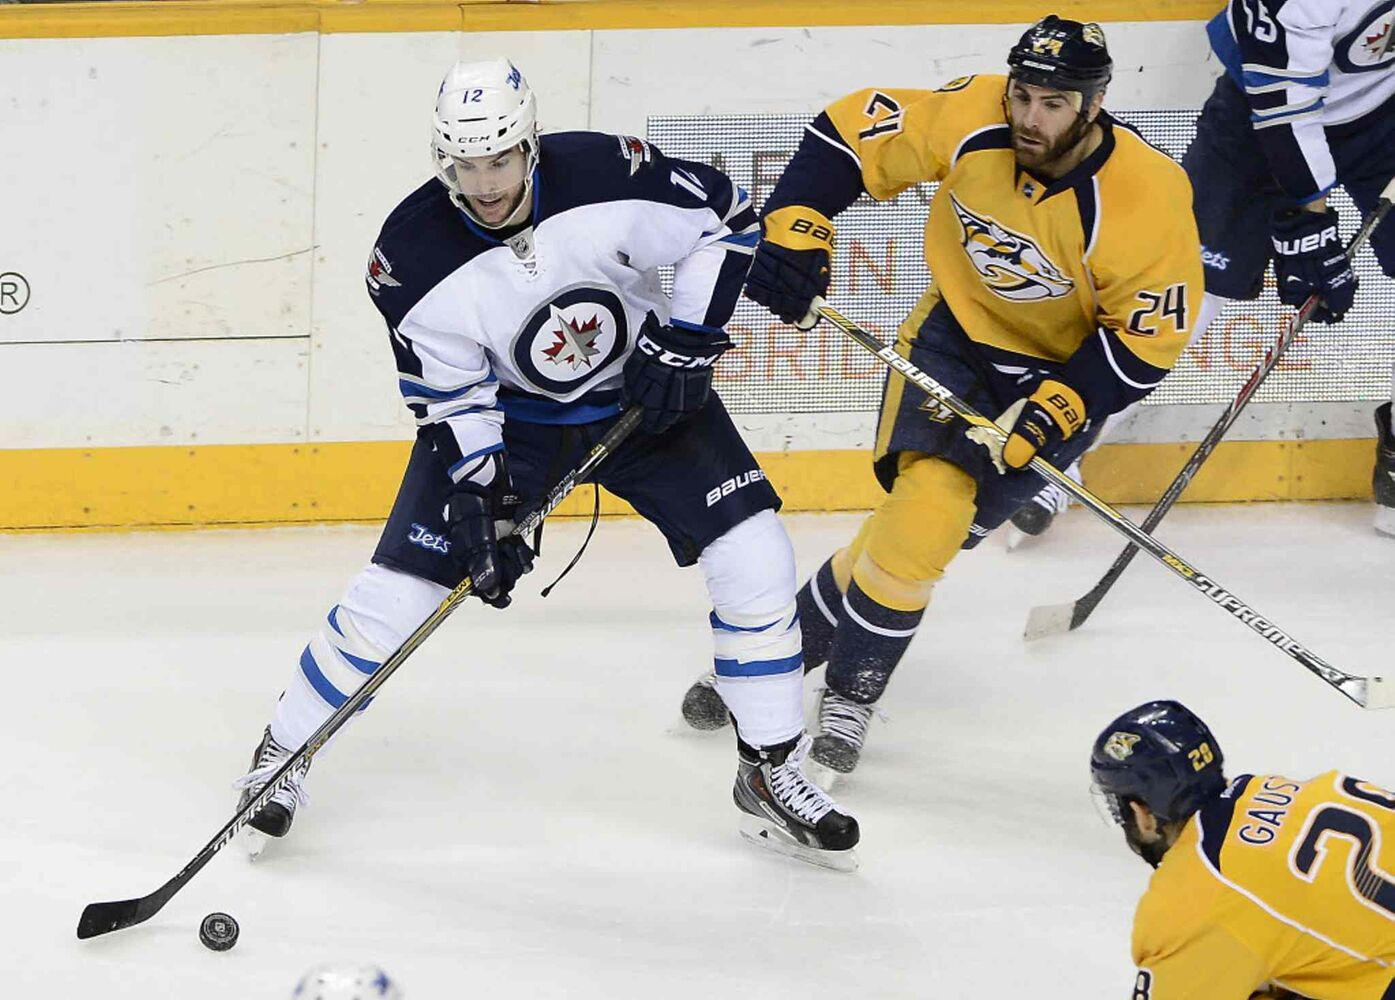 Winnipeg Jets right wing Drew Stafford, left, passes the puck as Nashville Predators left wing Eric Nystrom (24) defends in the second period. (Mark Zaleski / The Associated Press)